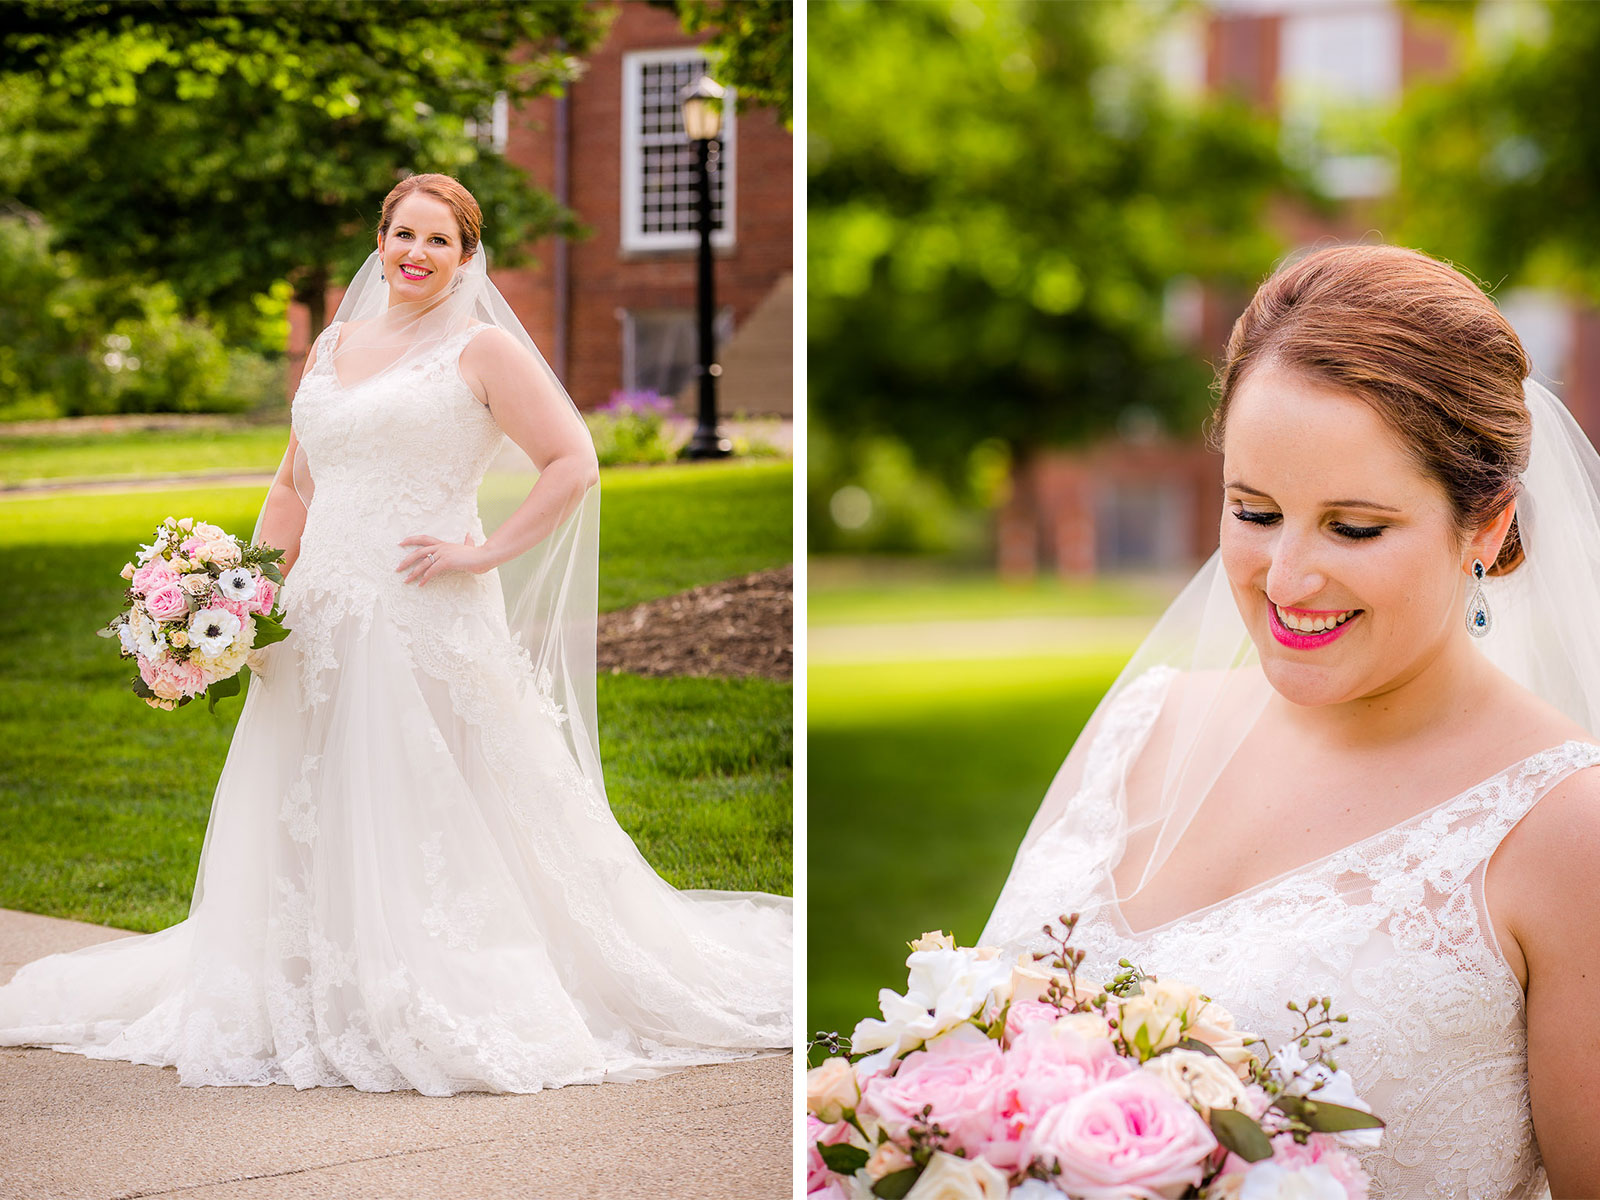 Eric_and_Christy_Photography_Blog_Wedding_Paige_Eric-42-43